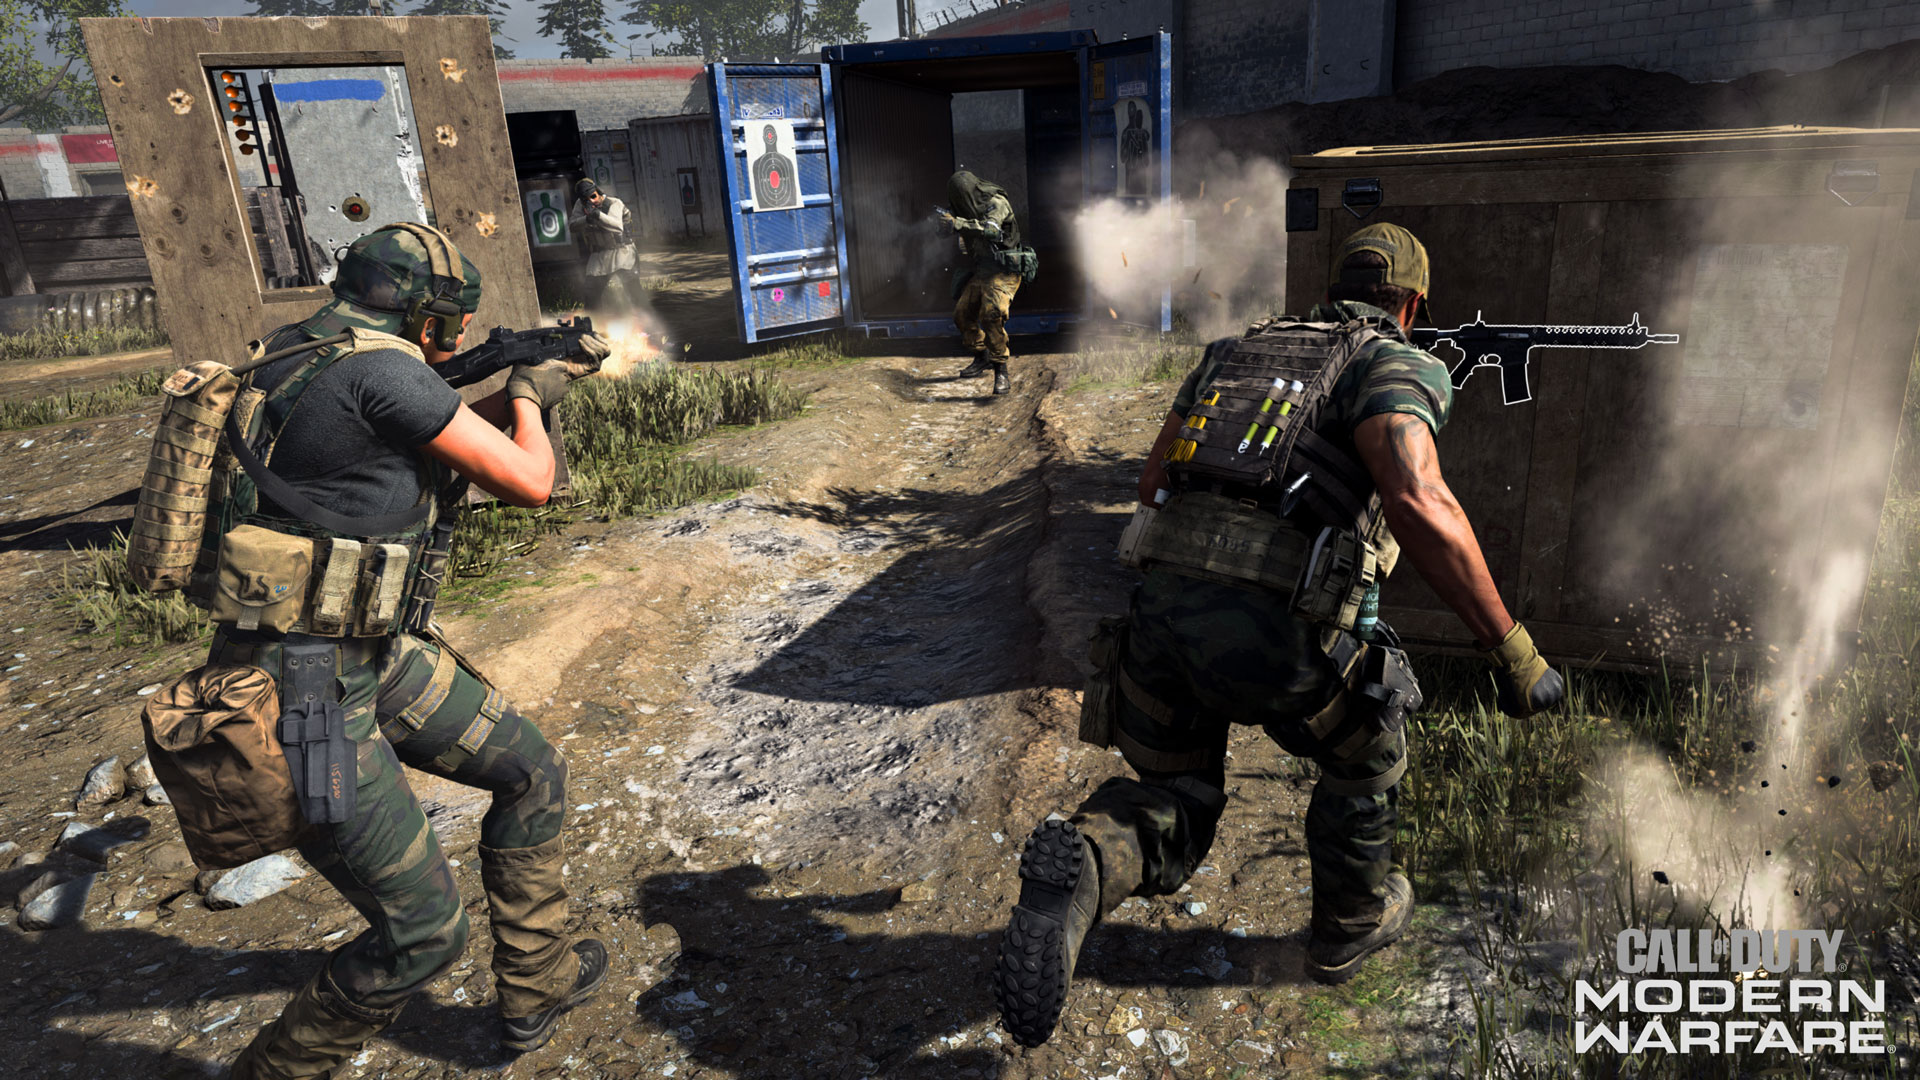 Call of Duty Game Glitch Takes Players to Locked Warzone Menu